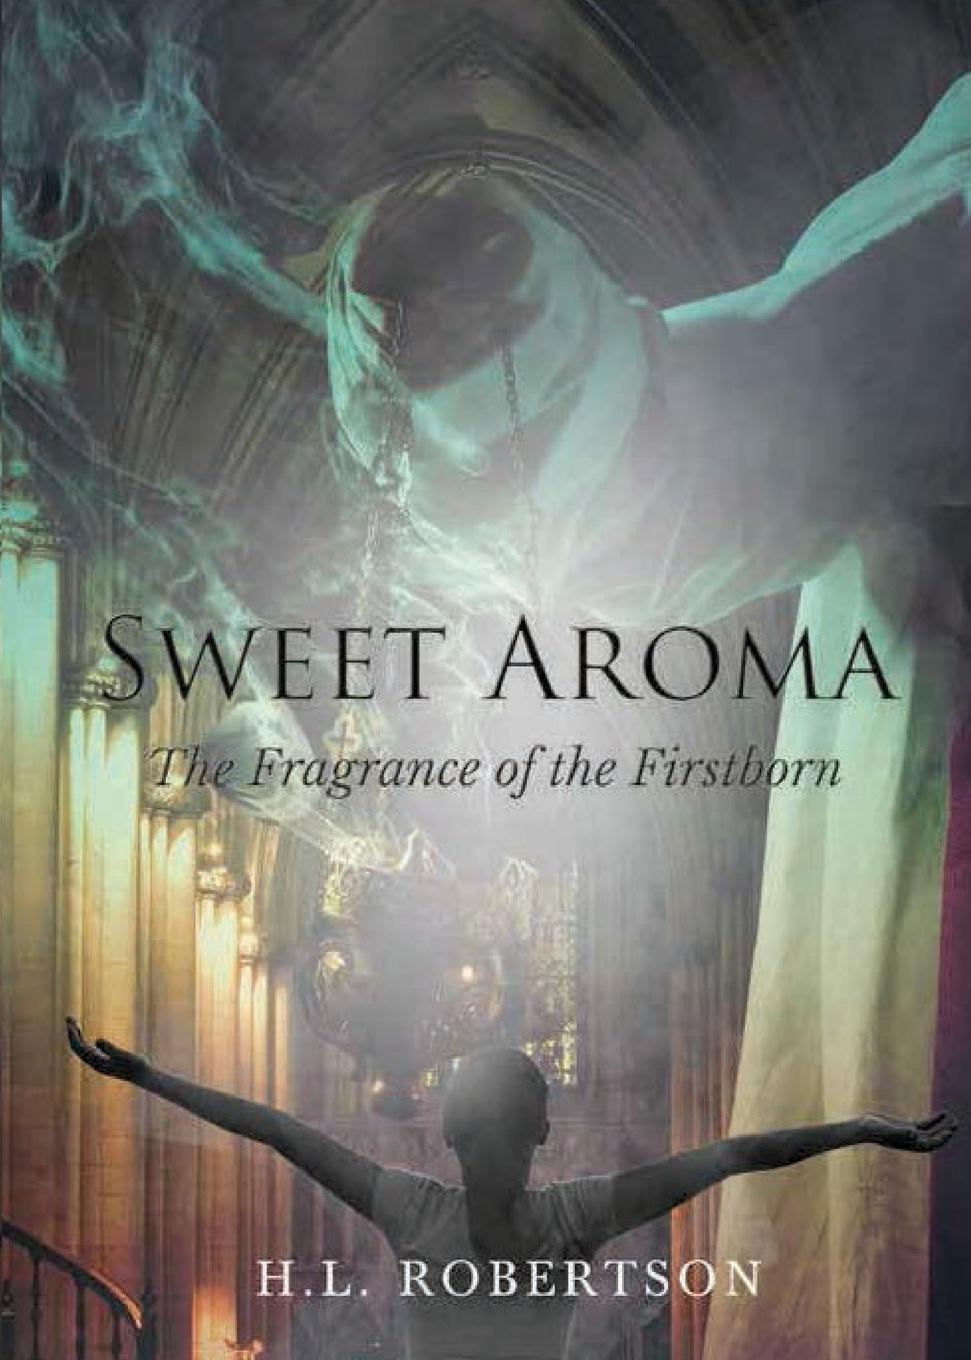 Sweet Aroma. The Fragrance of the Firstborn